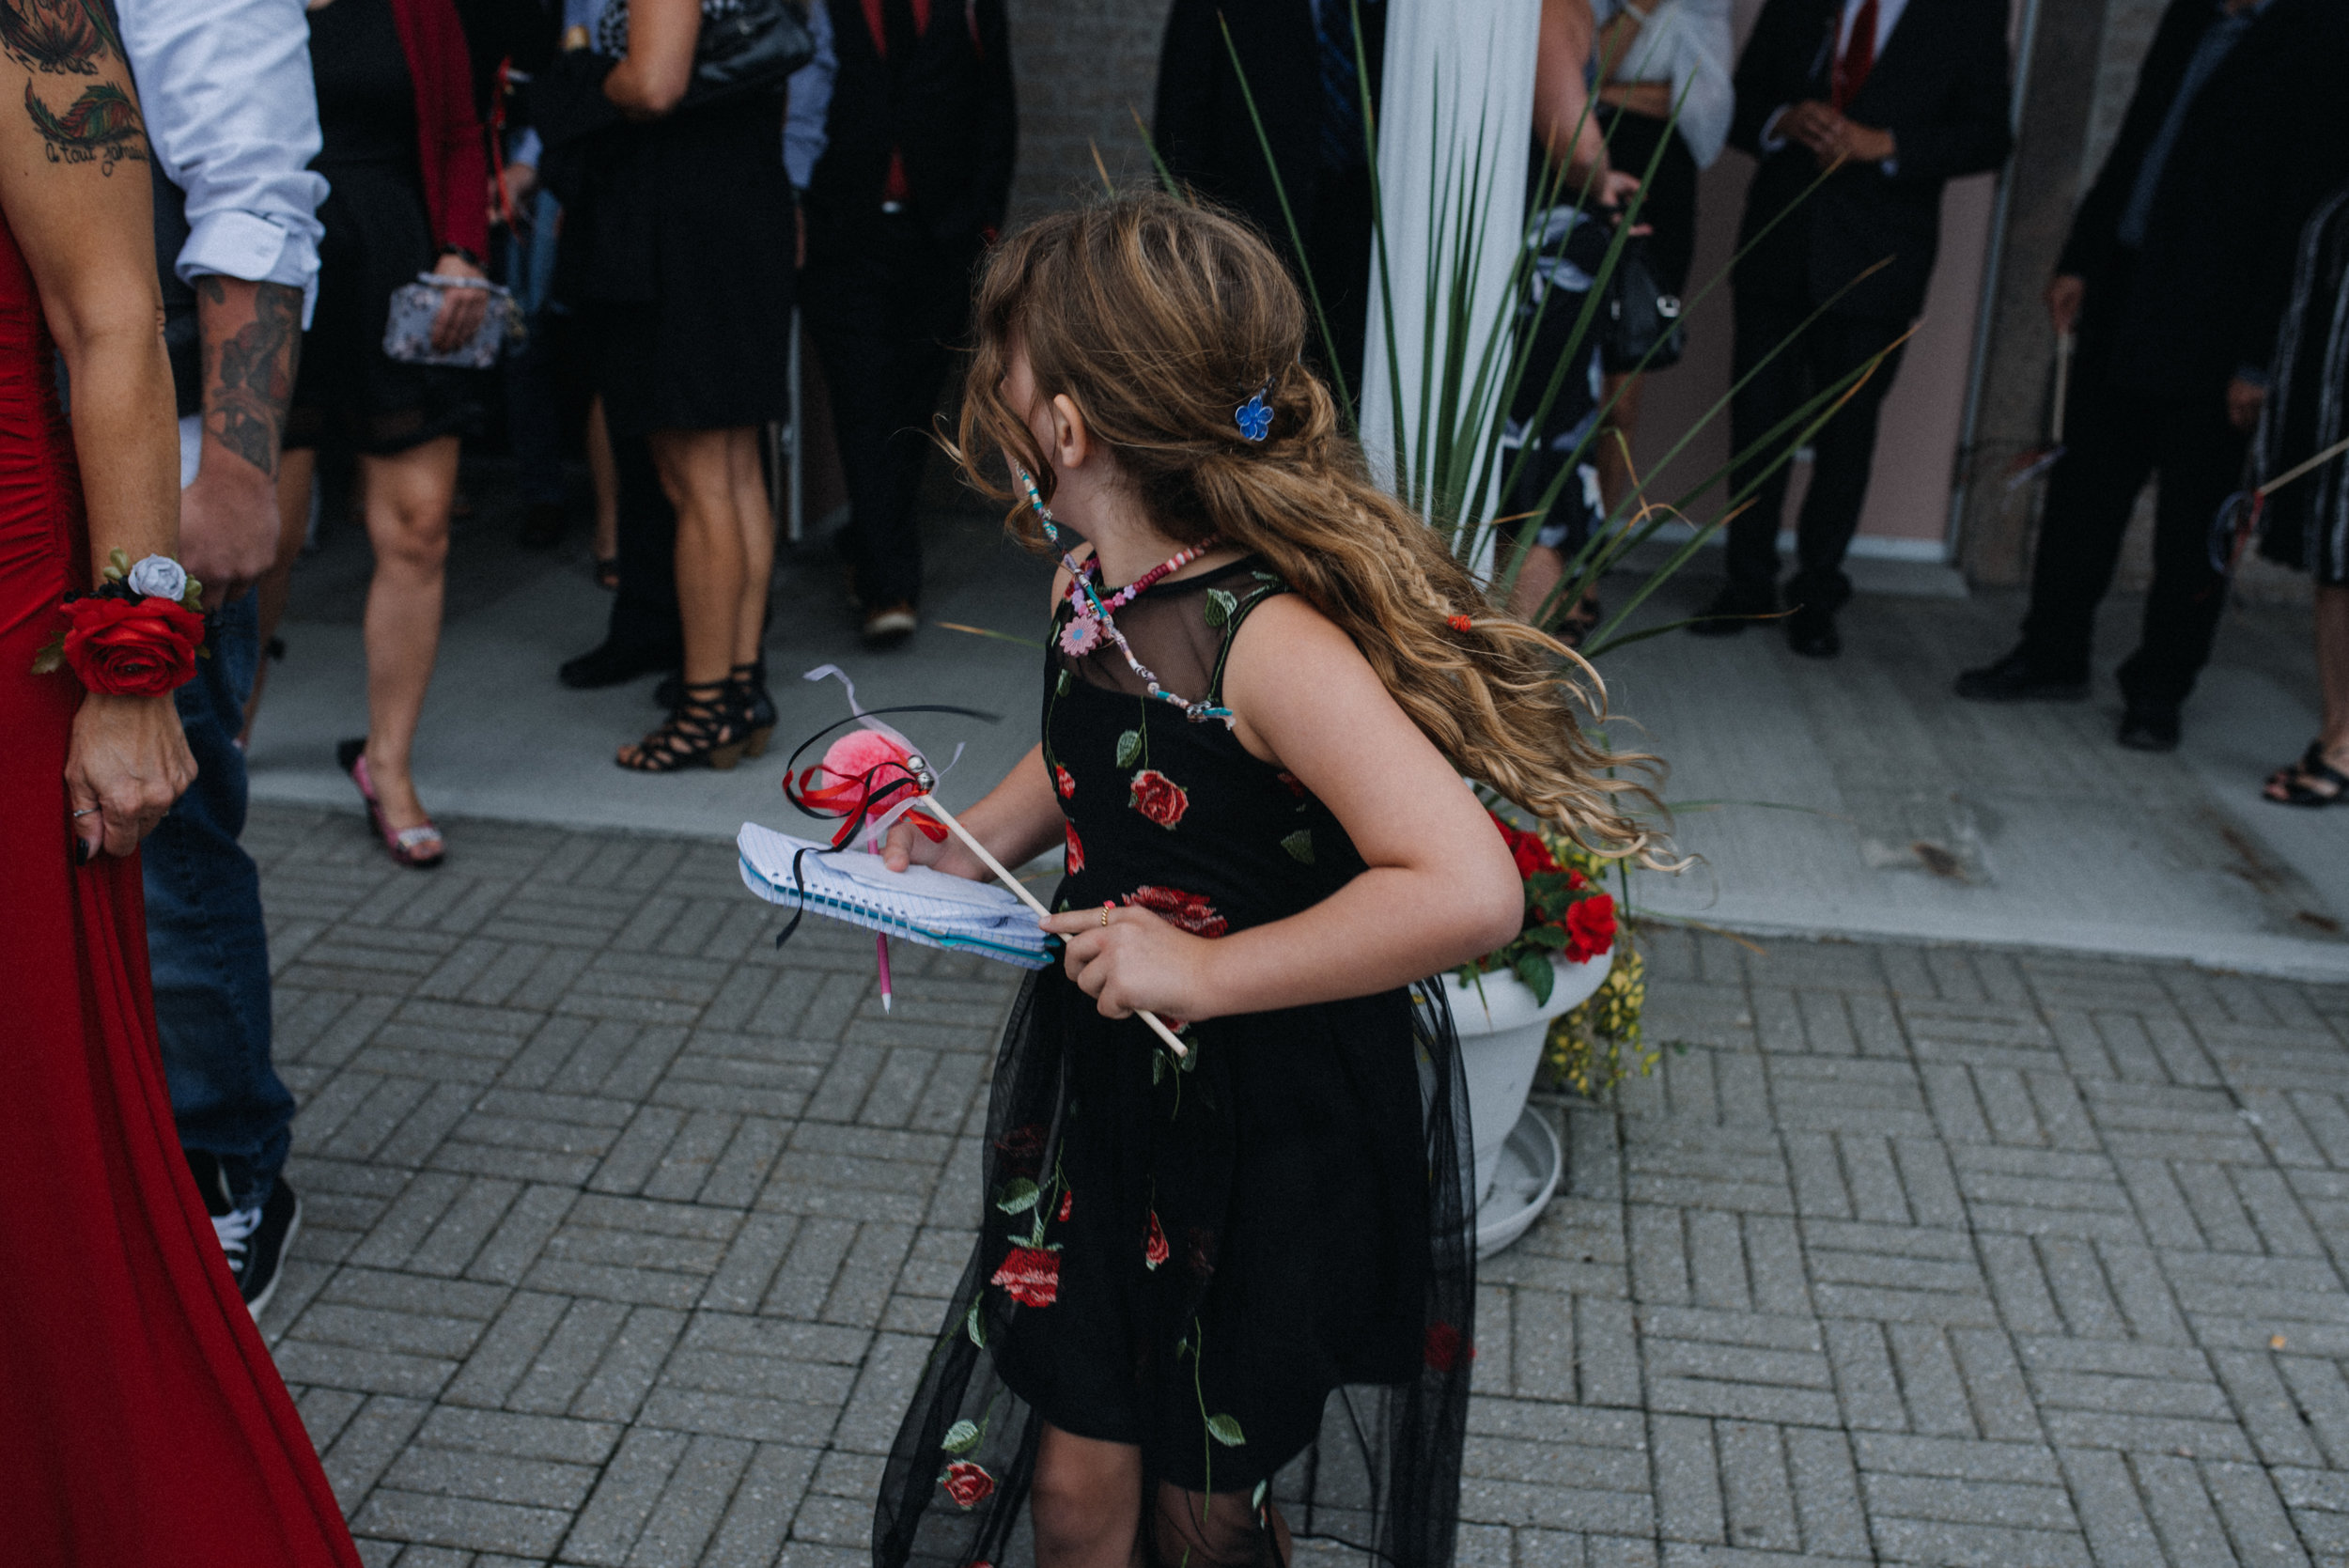 gatineau_photographe_mariage_ottawa_wedding_photographer_photography_candid_natural_moody_documentary_lifestyle (23).JPG